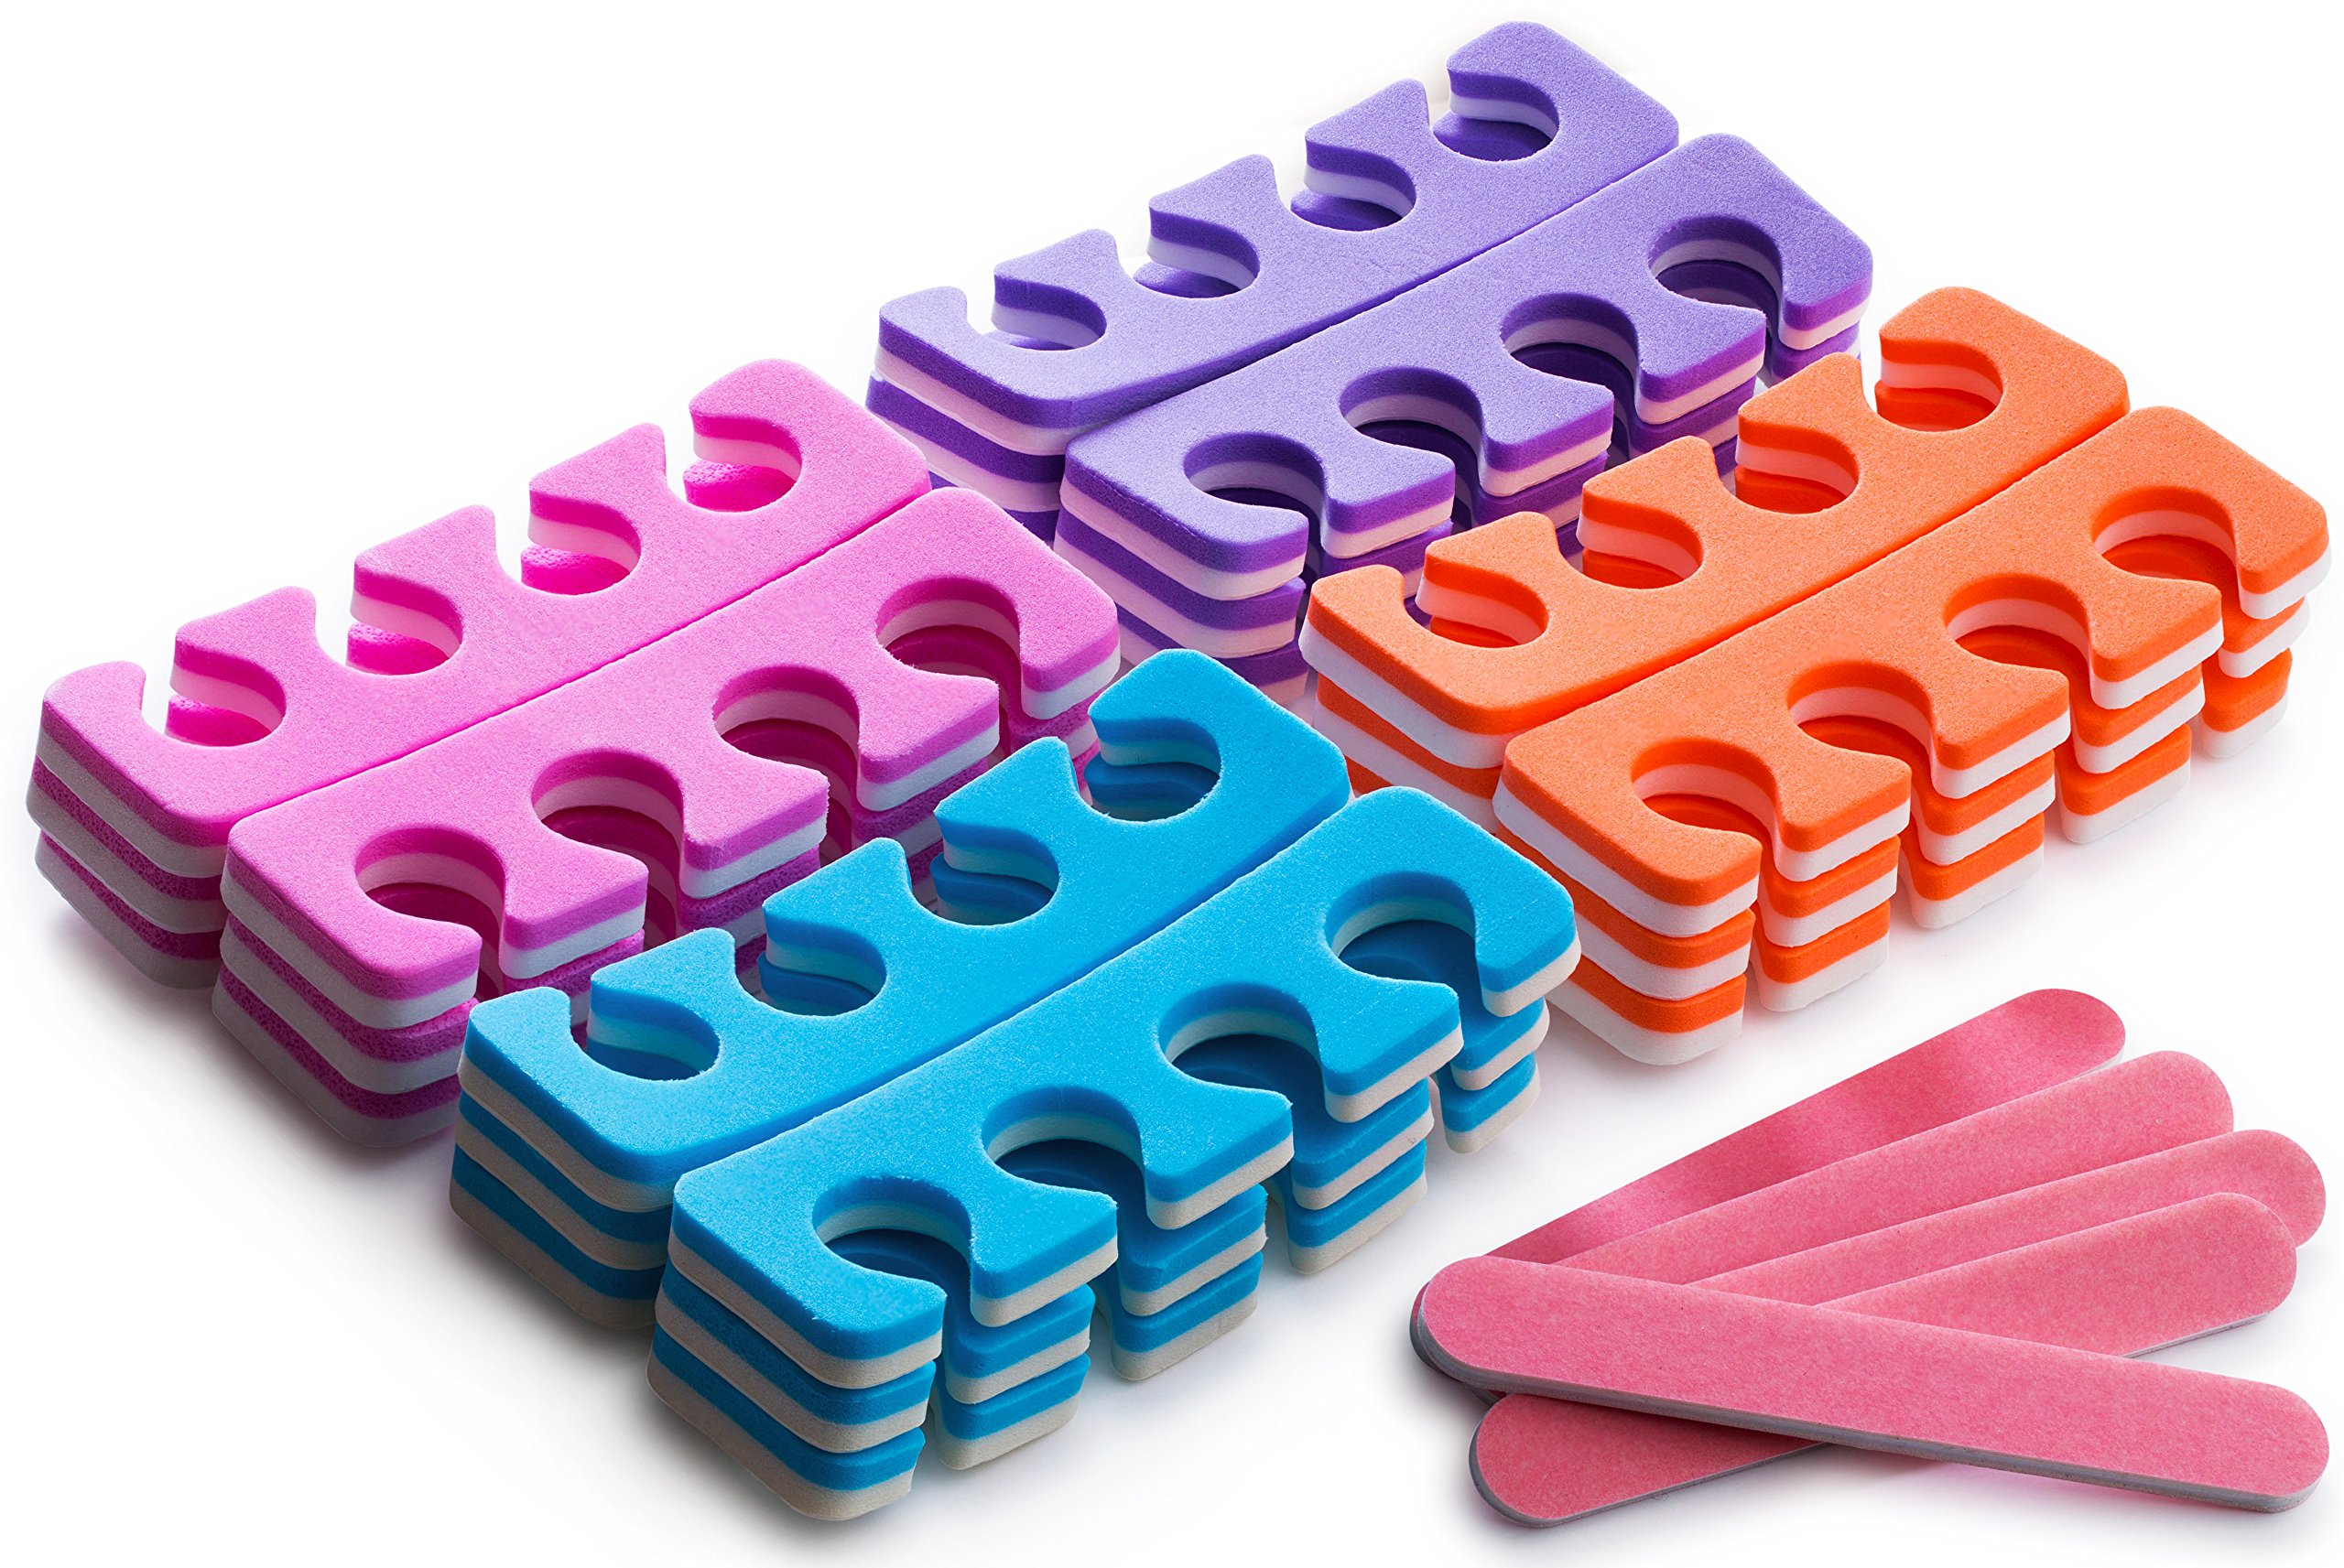 Pack of 36 Pairs - Soft Two Tone Foam Toe Separators, Toe Spacers, Great Toe Cushions for Nail Polish, Pedicure, Manicure, and Other Uses, Includes 8 Pink Mini Nail Buffering Files by GlossyEnd